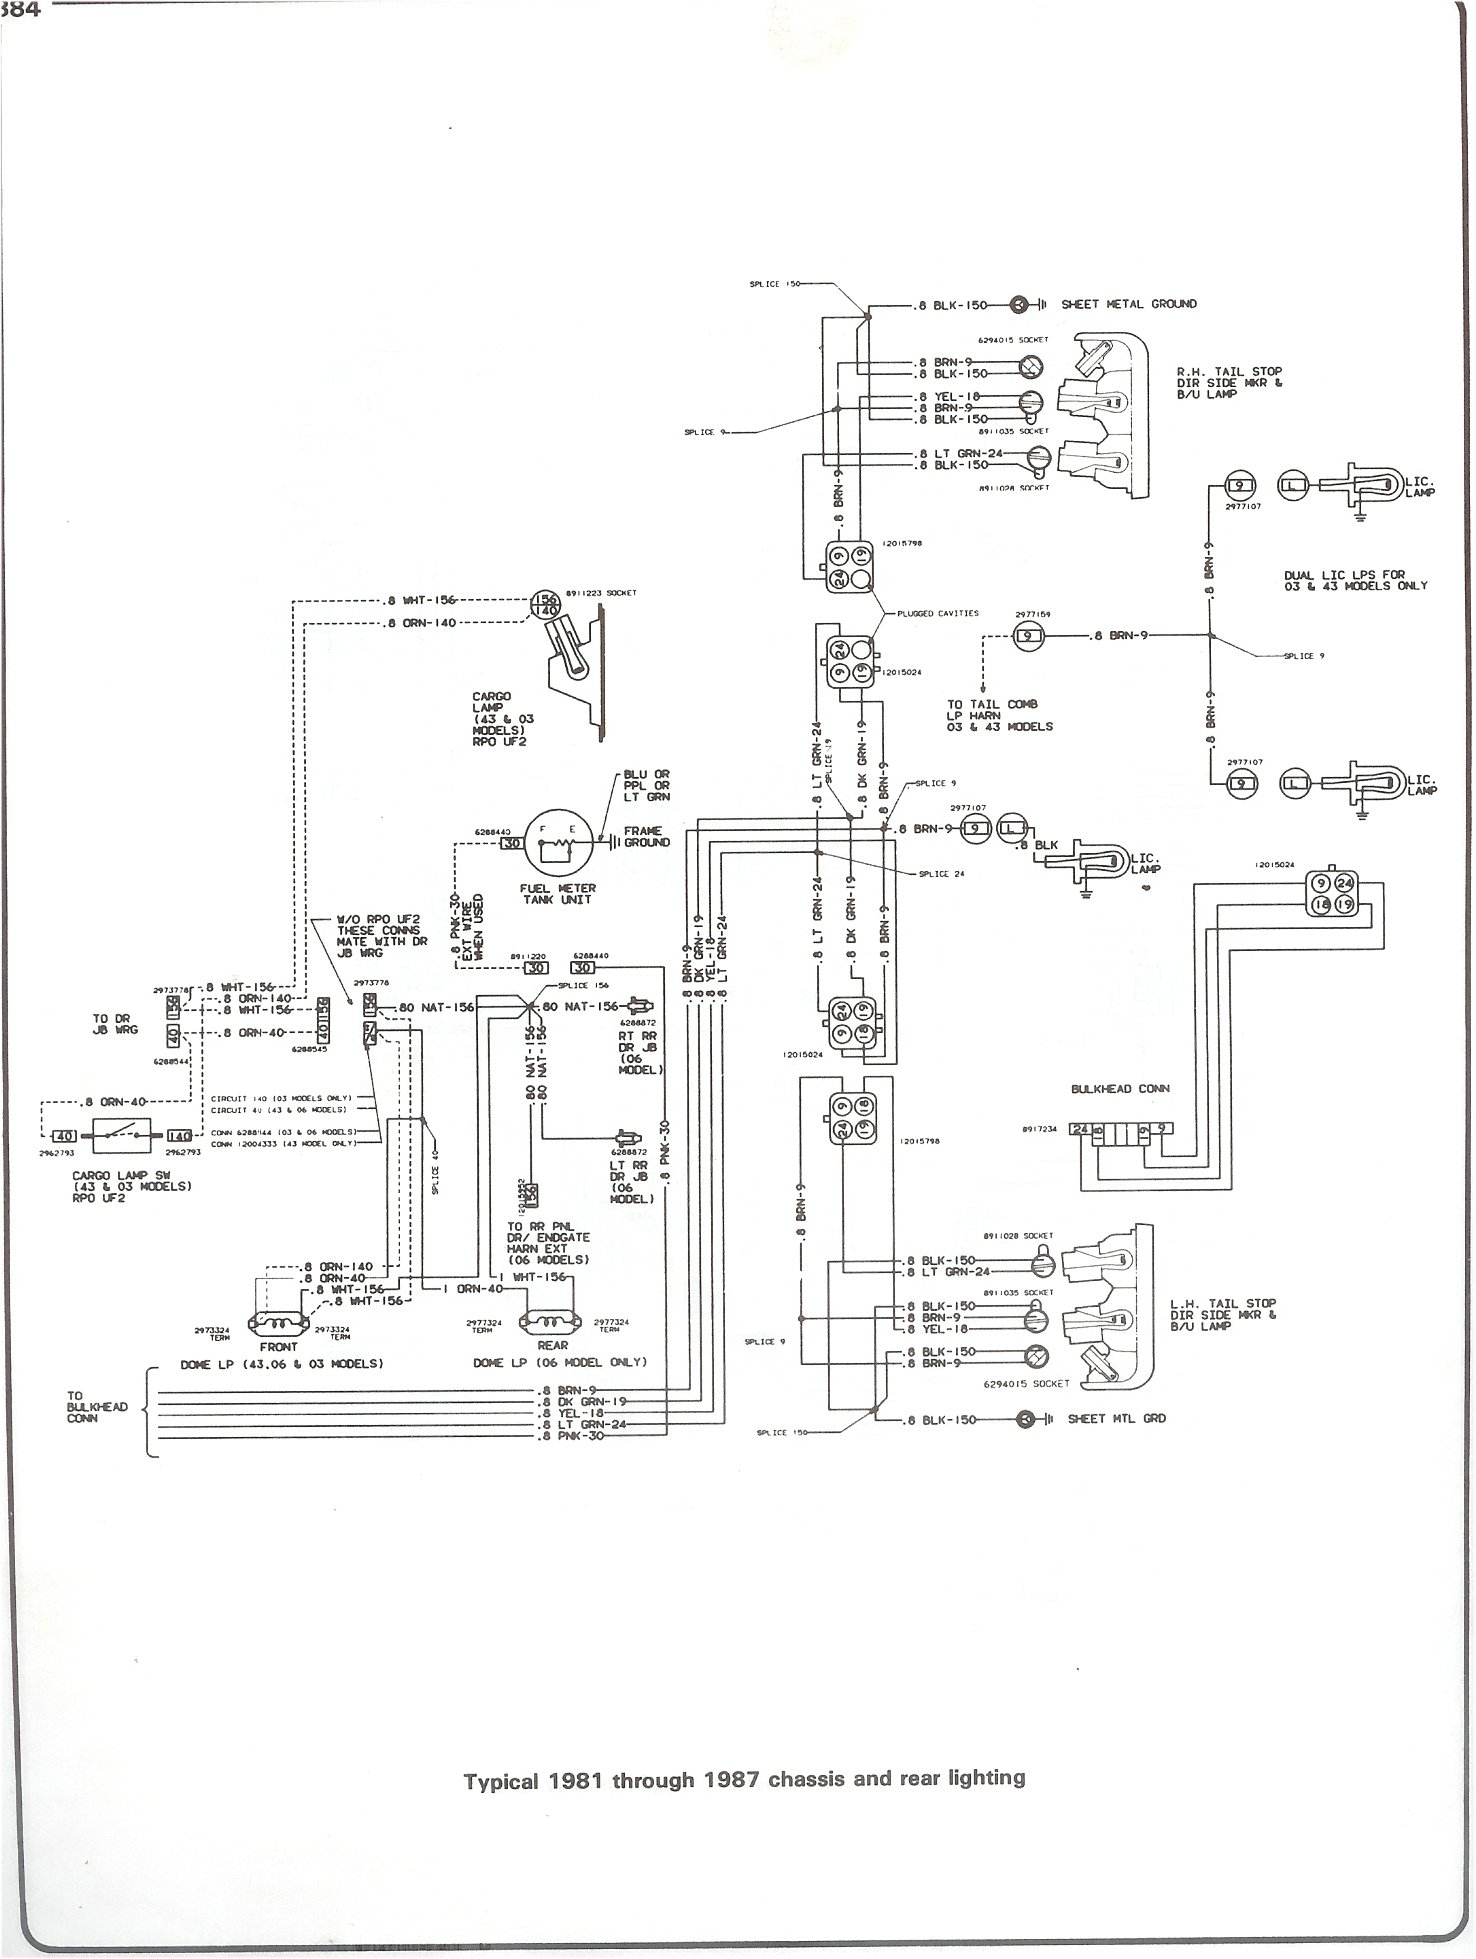 Silverado Drawing At Getdrawings Com Free For Personal Use 2001 Chevy  Silverado 1500 Wiring Diagram 2002 Chevy Silverado Power Window Wiring  Diagram